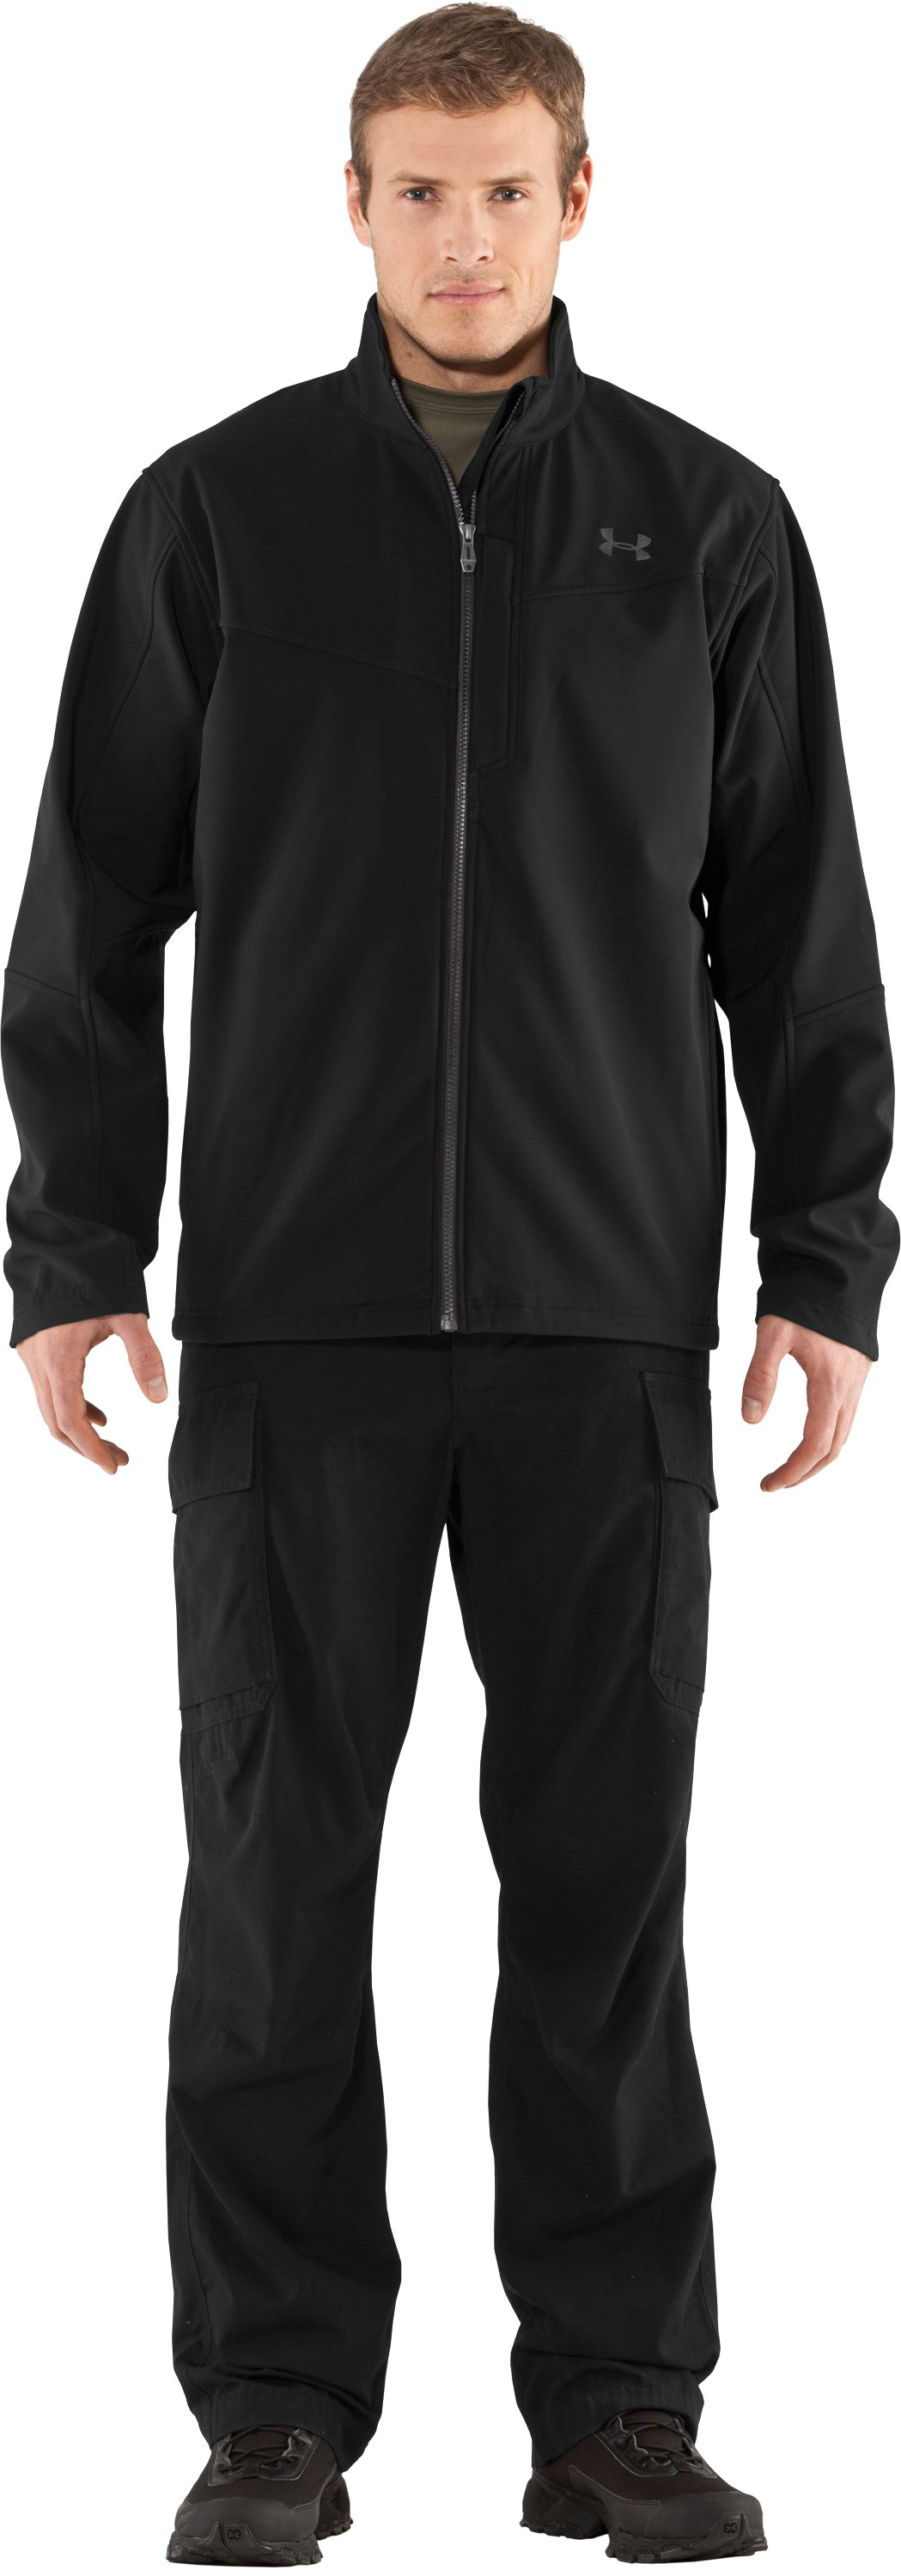 Men's Skyscraper Softshell Jacket, Black , zoomed image